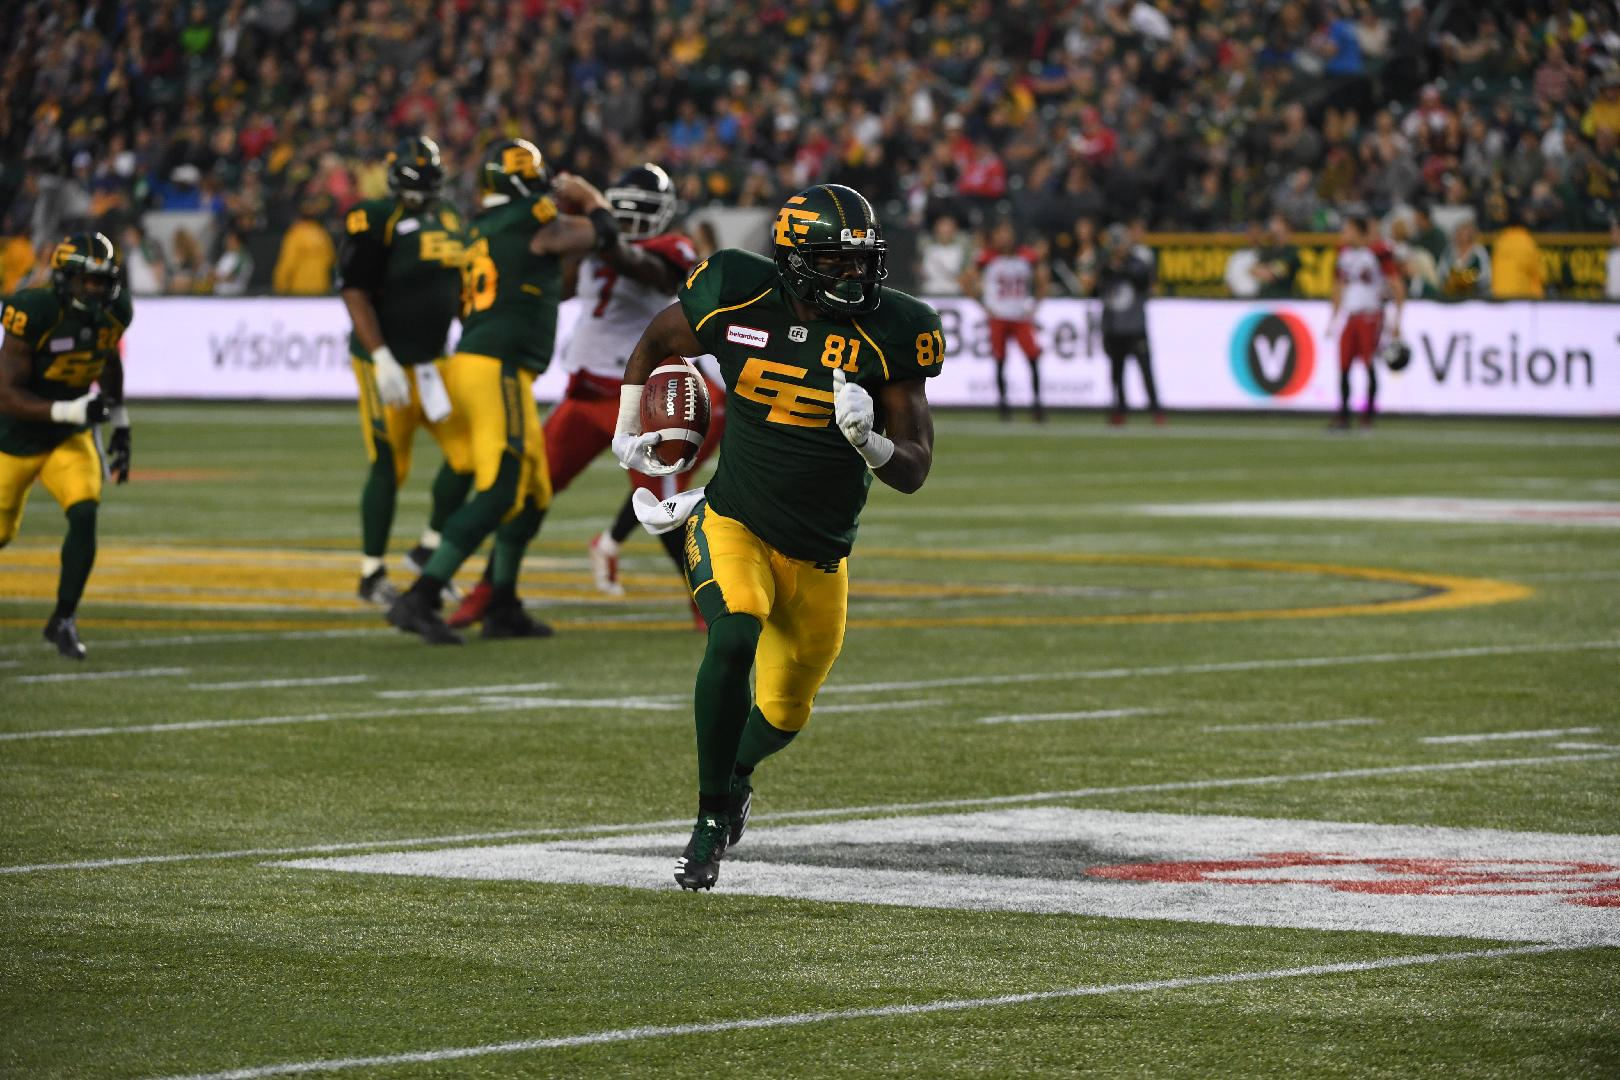 Receiving the benefits: Where Mike Reilly lands matters to the wide-outs.